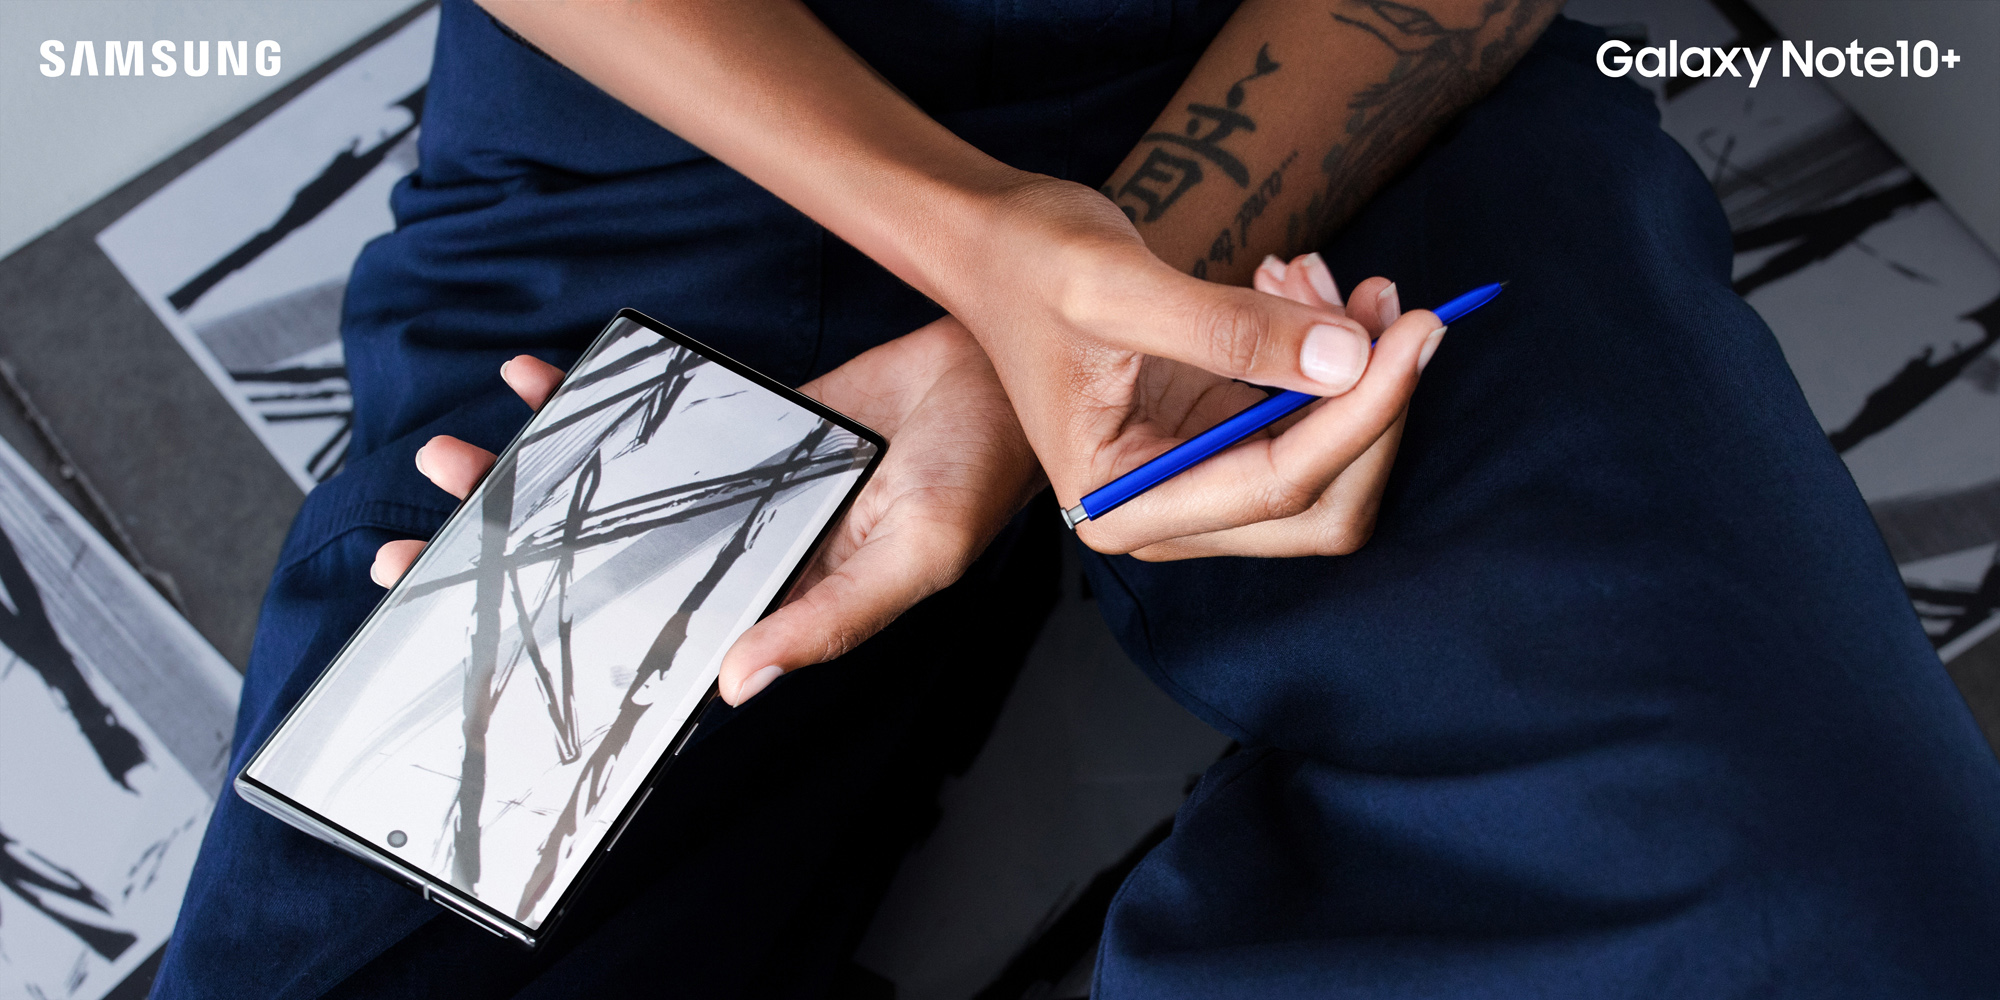 Samsung launches Galaxy Note 10